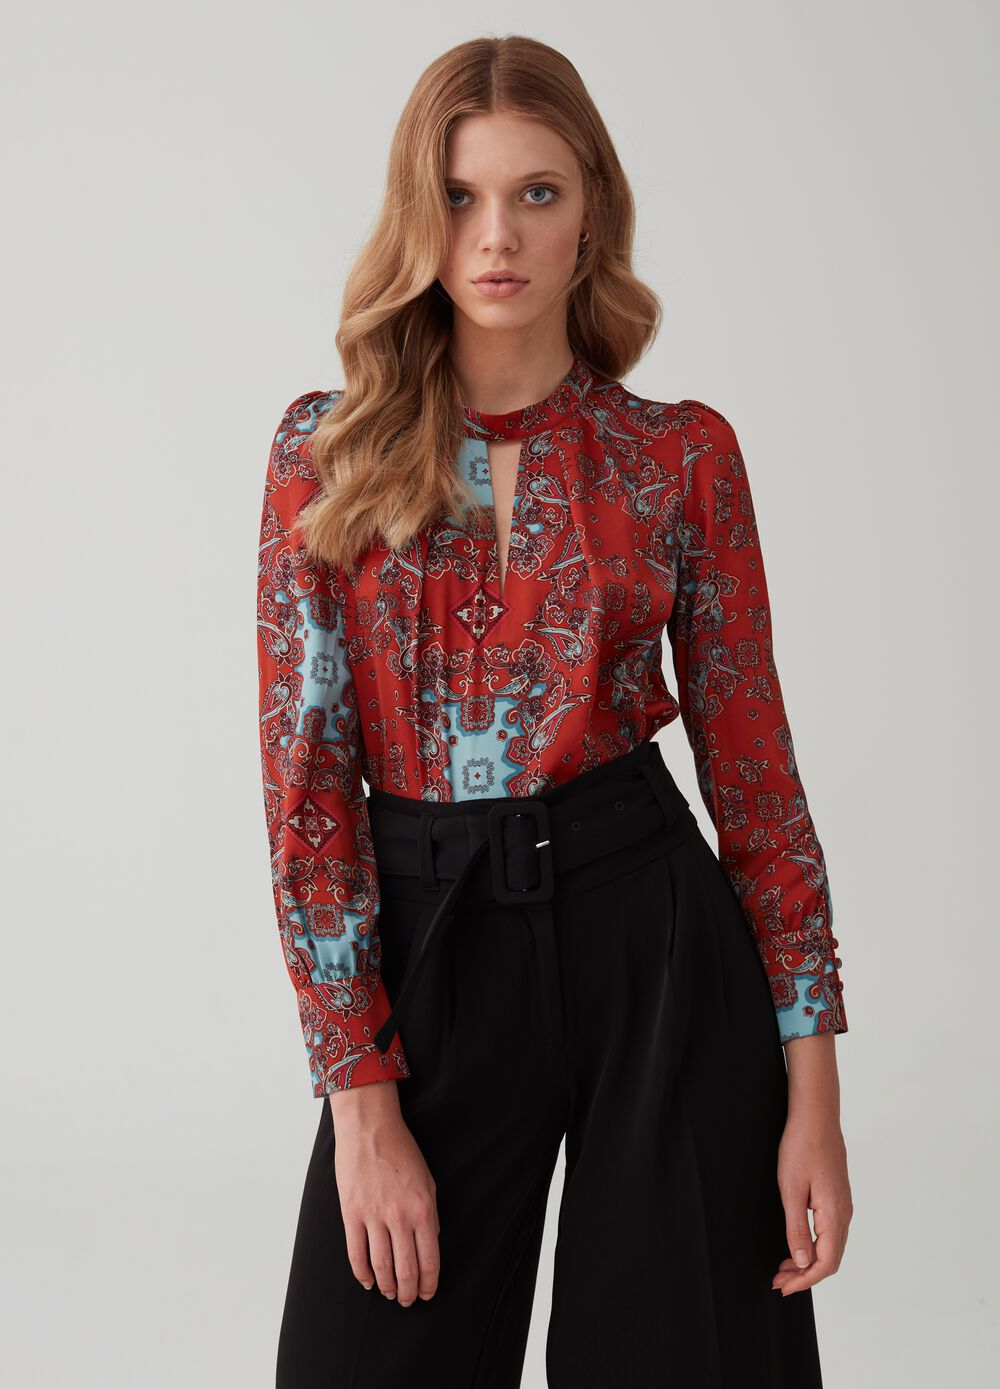 Blouse with long sleeves and gathering